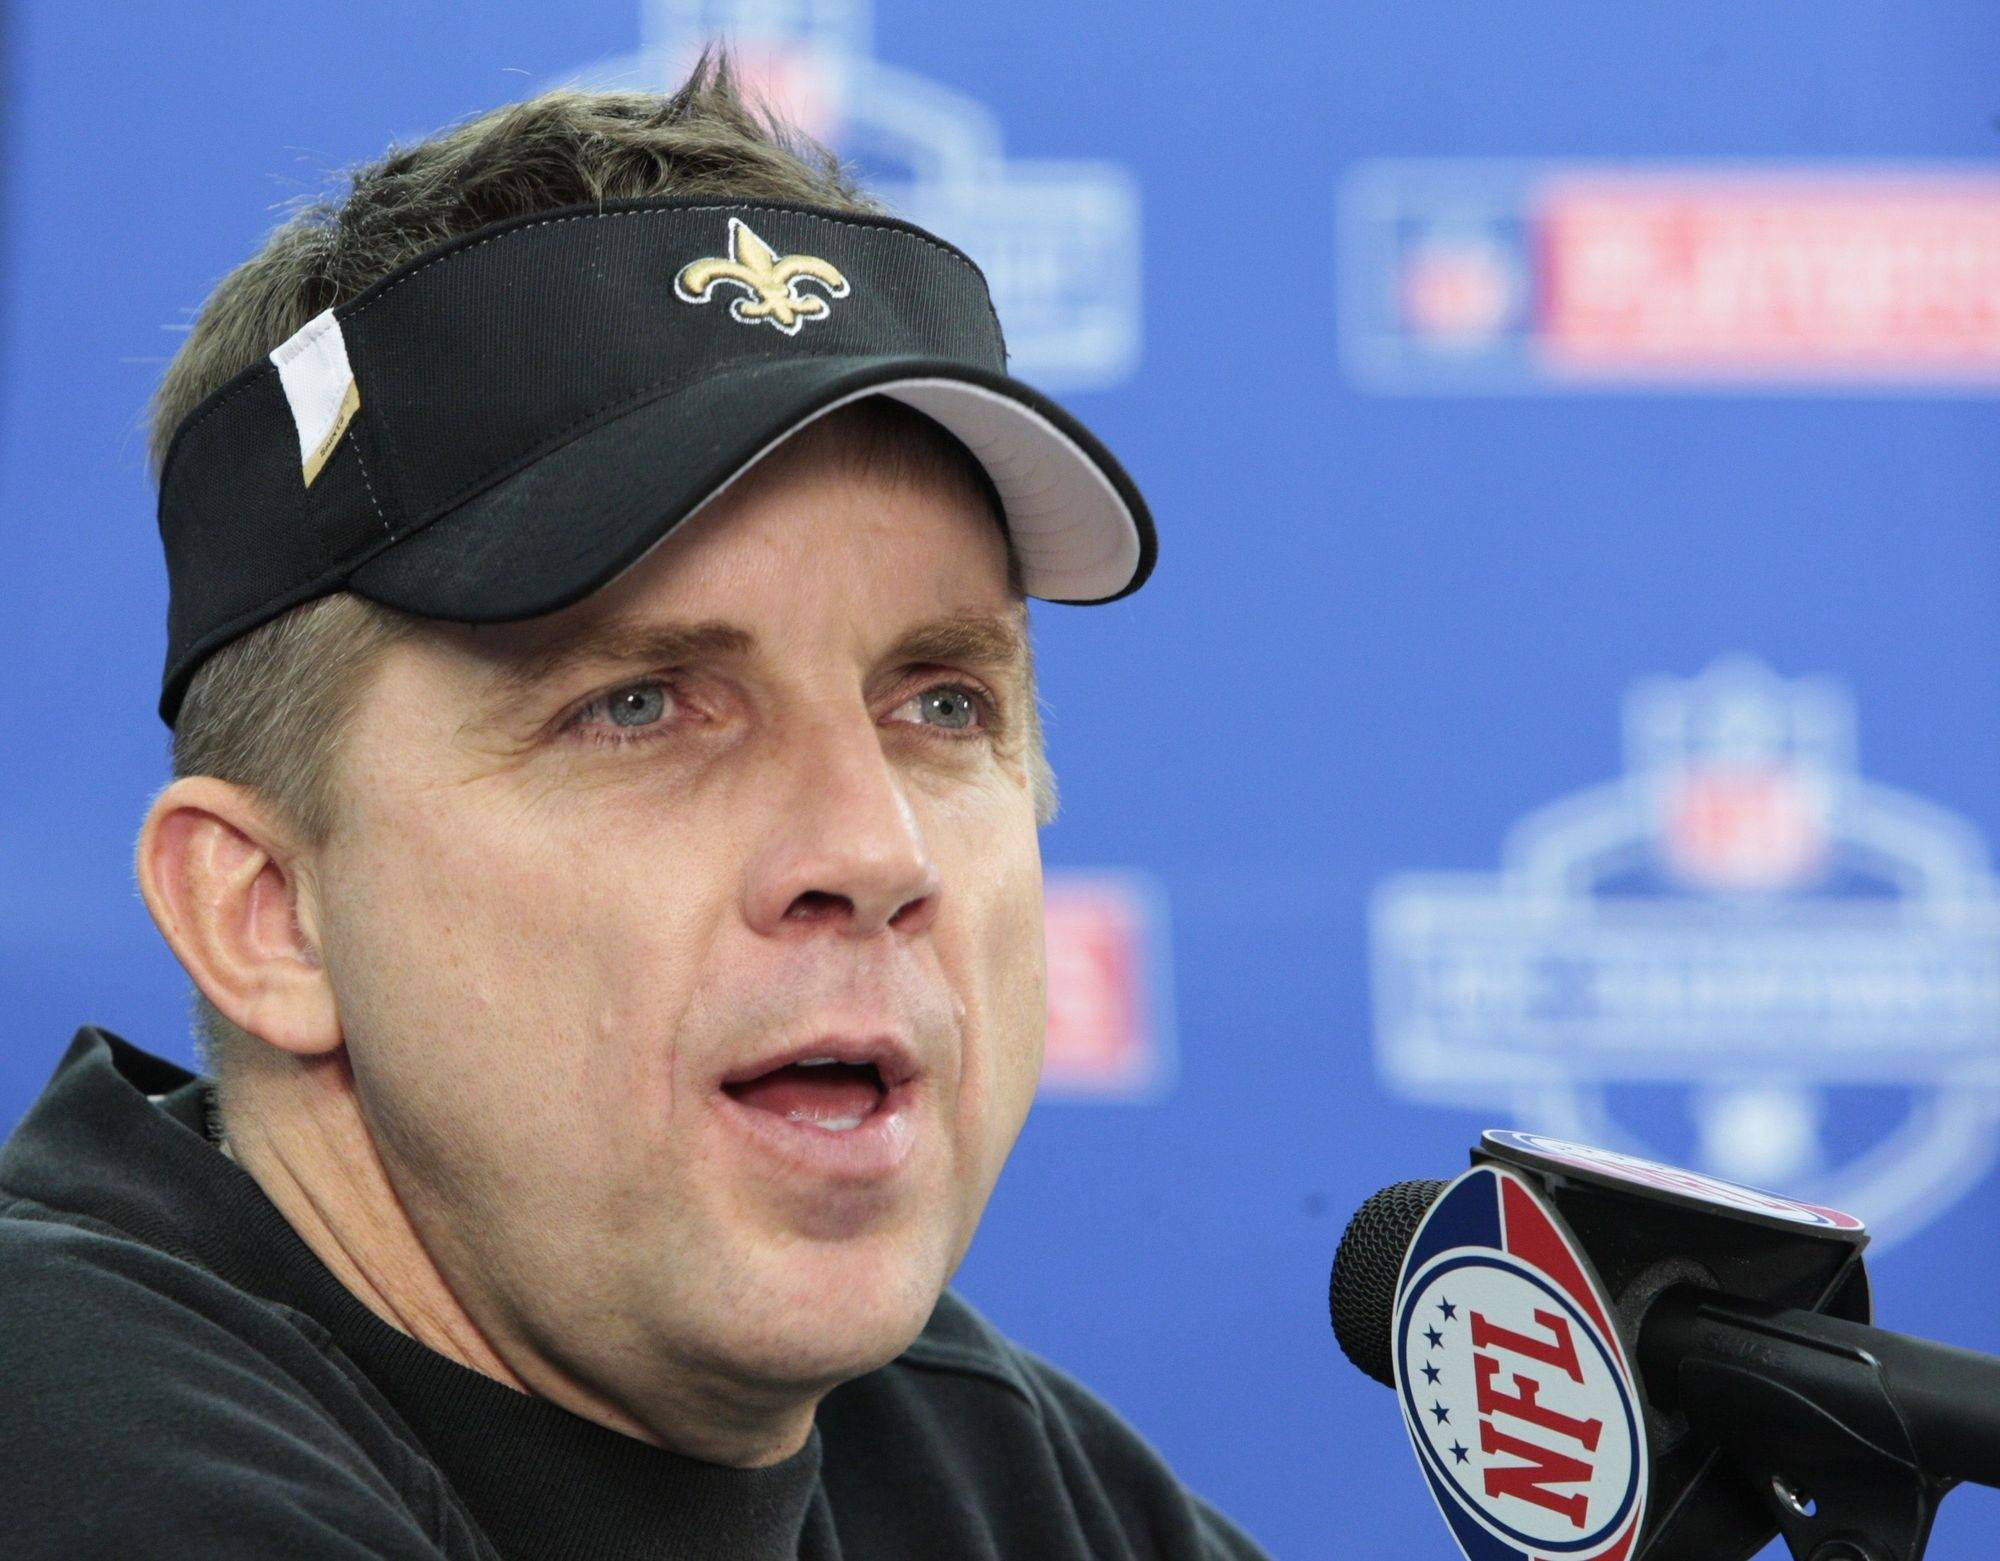 New Orleans Saints coach Sean Payton, a 1982 graduate of Naperville Central High School, has donated an item for an auction that will help the school create an outdoor Honor Garden.